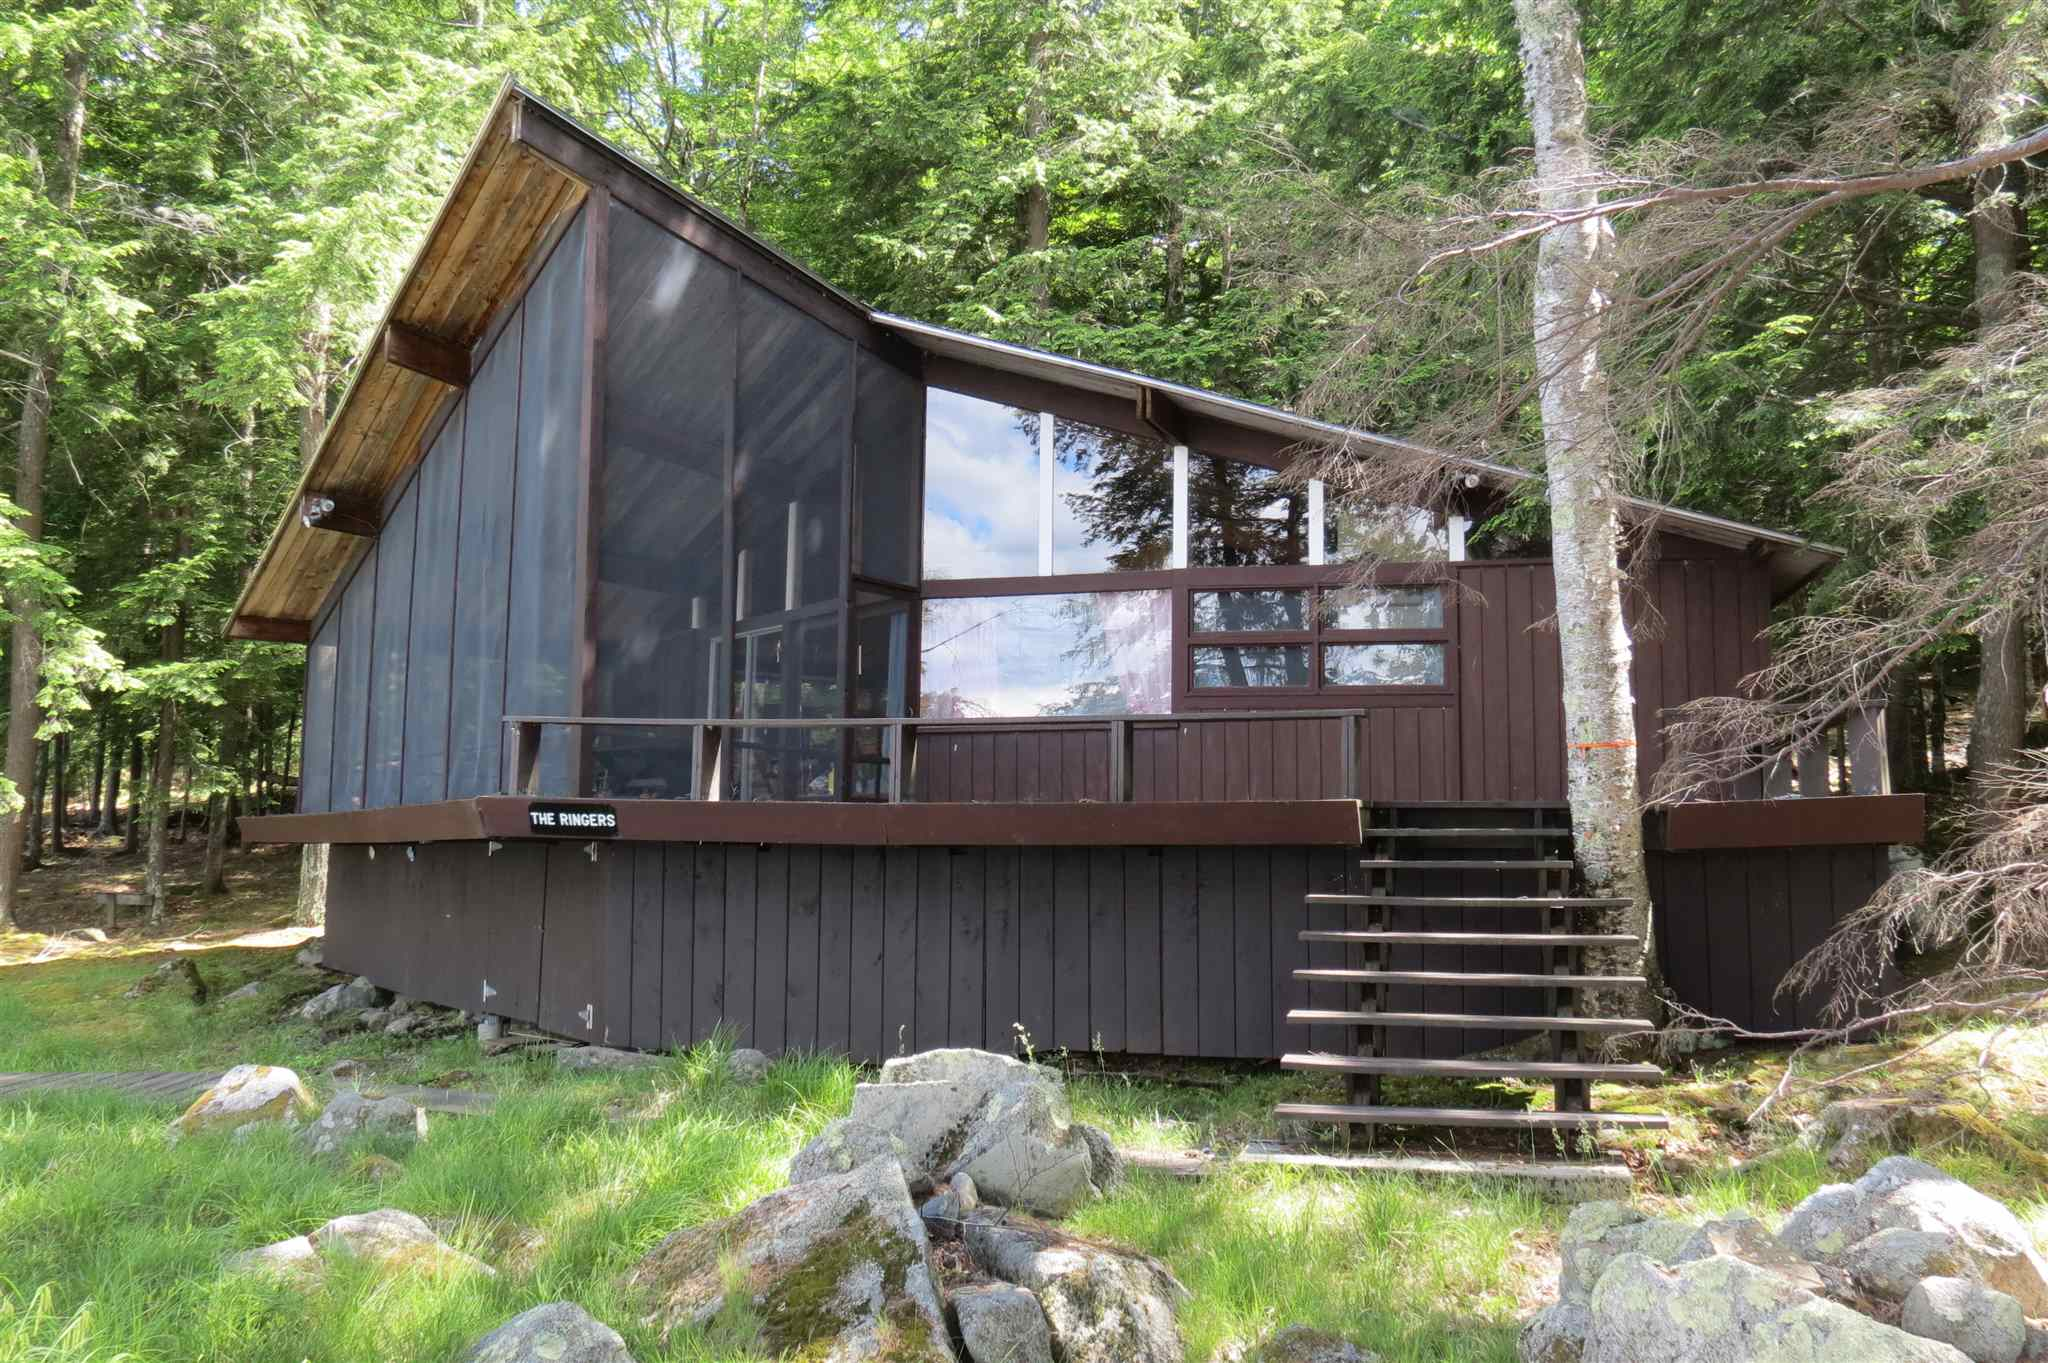 MLS 4812311: 15 Little Bear Island, Tuftonboro NH